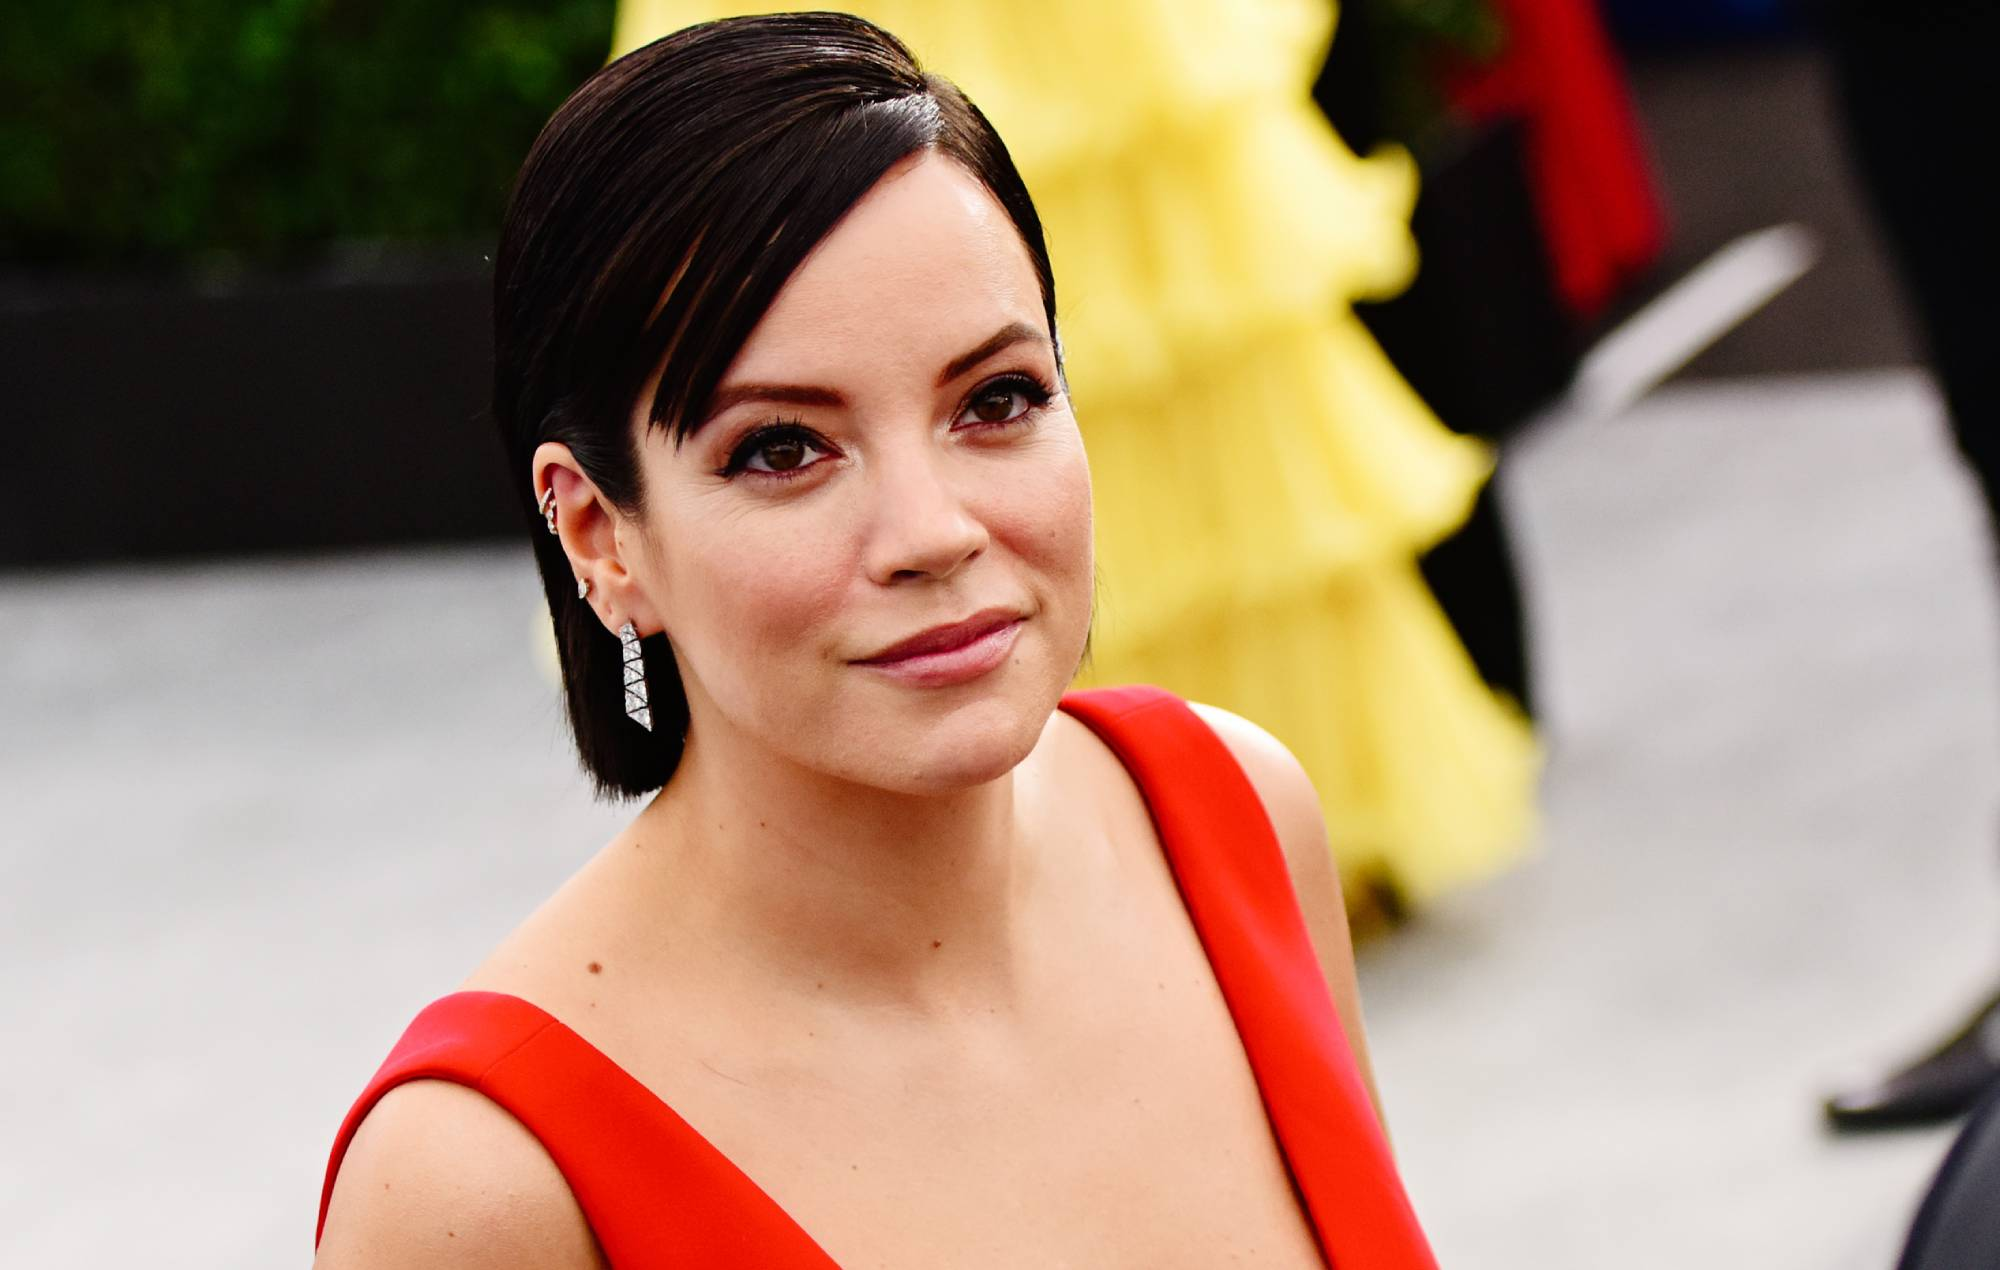 Lily Allen says she considered taking heroin while supporting Miley Cyrus on tour